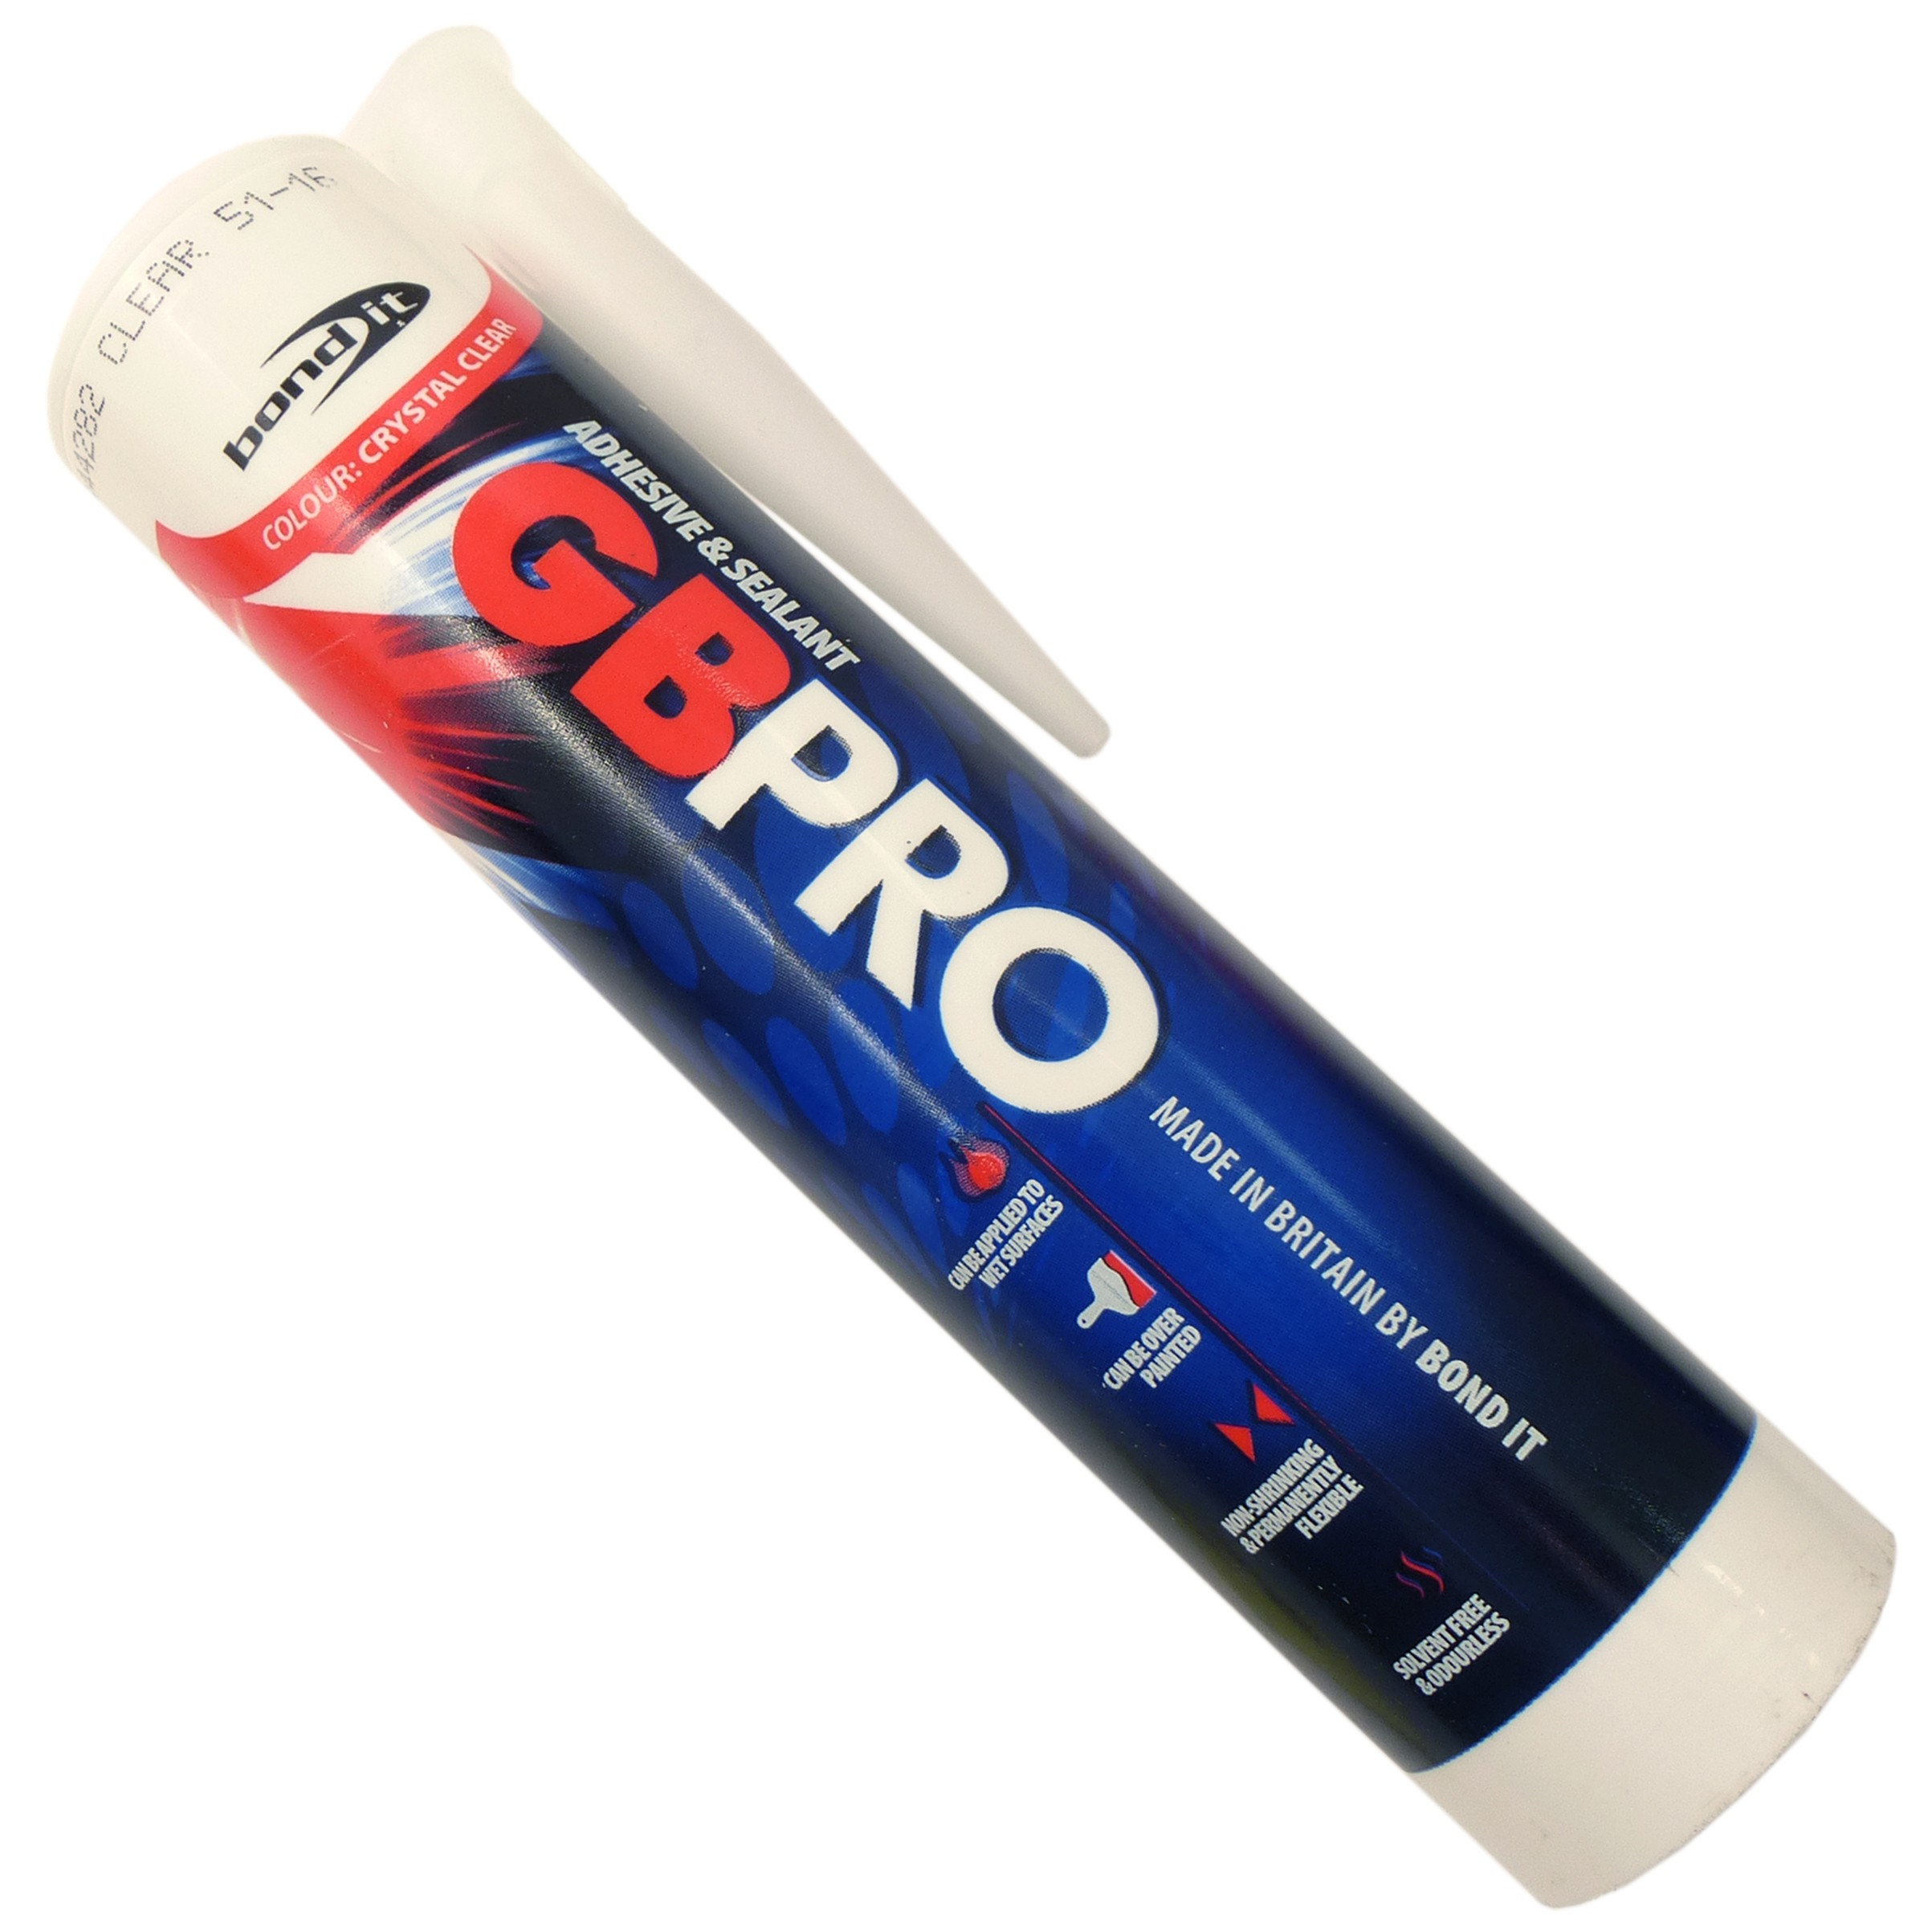 Bond It G B Pro Hybrid Polymer Silicone - Clear, 290ml